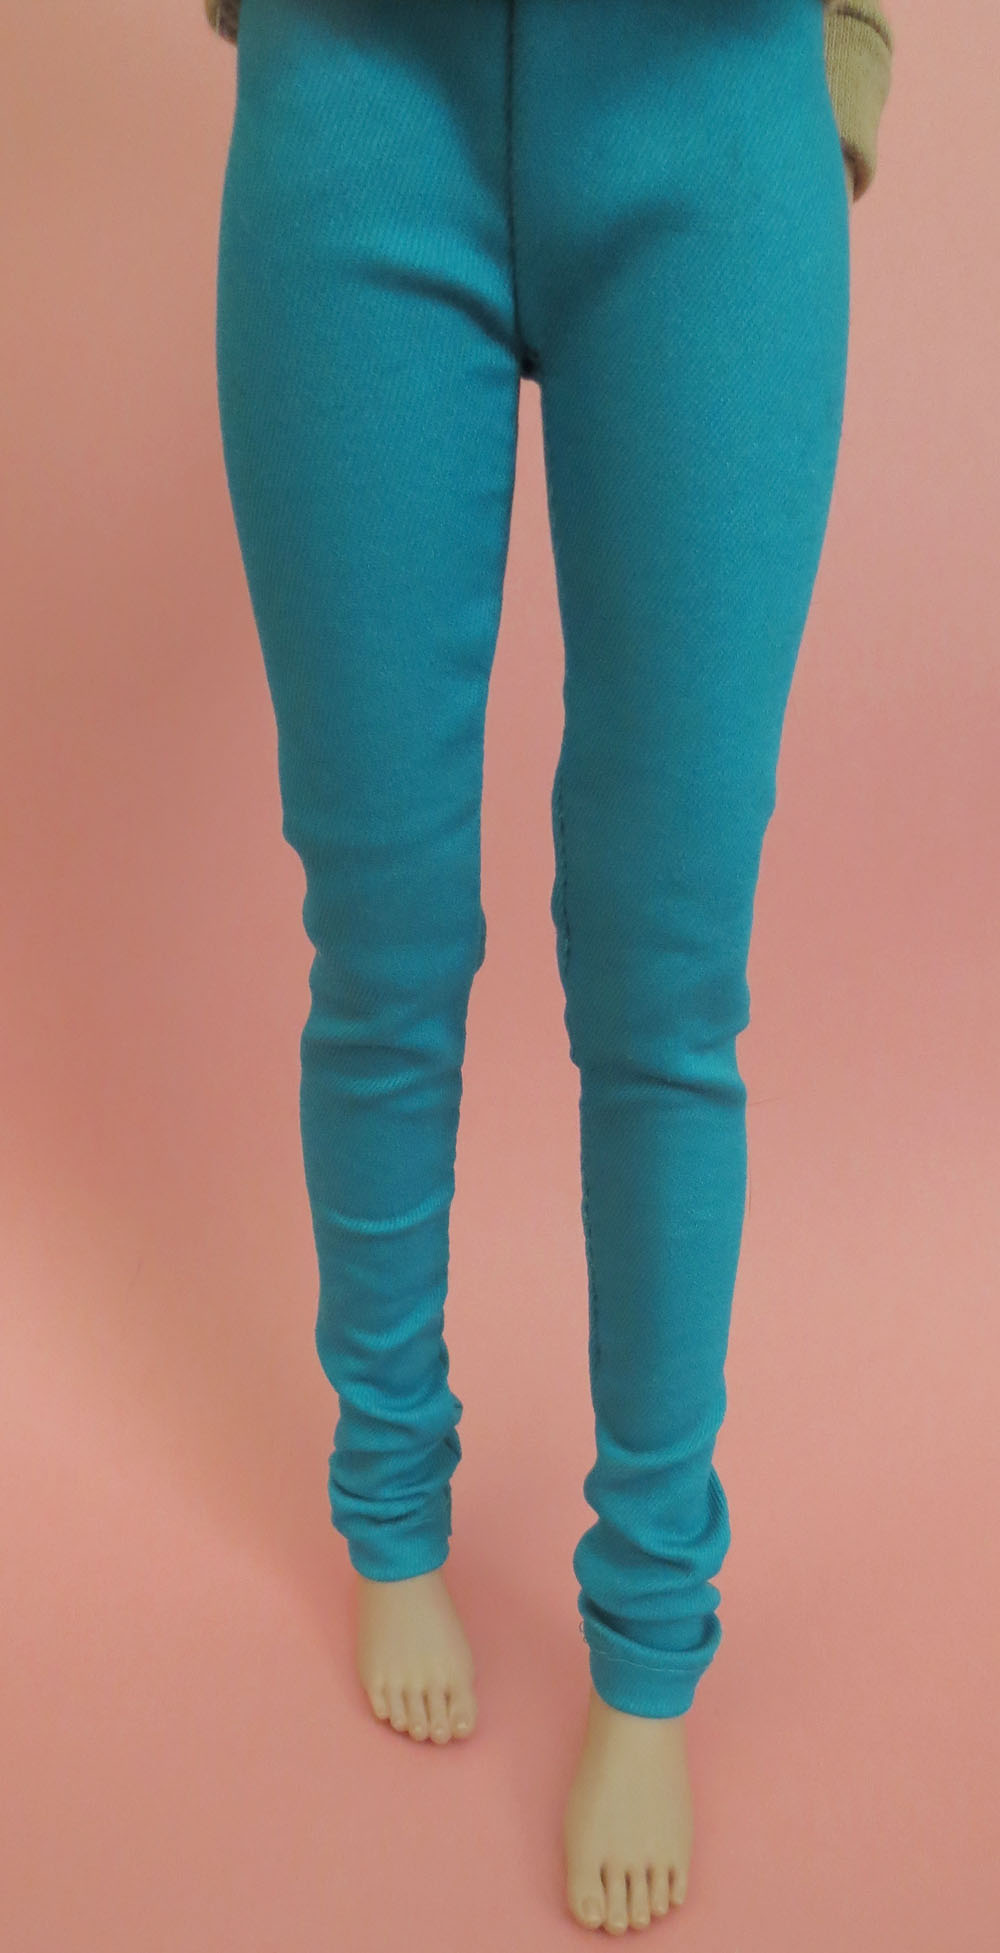 Shop for teal pants online at Target. Free shipping on purchases over $35 and save 5% every day with your Target REDcard.